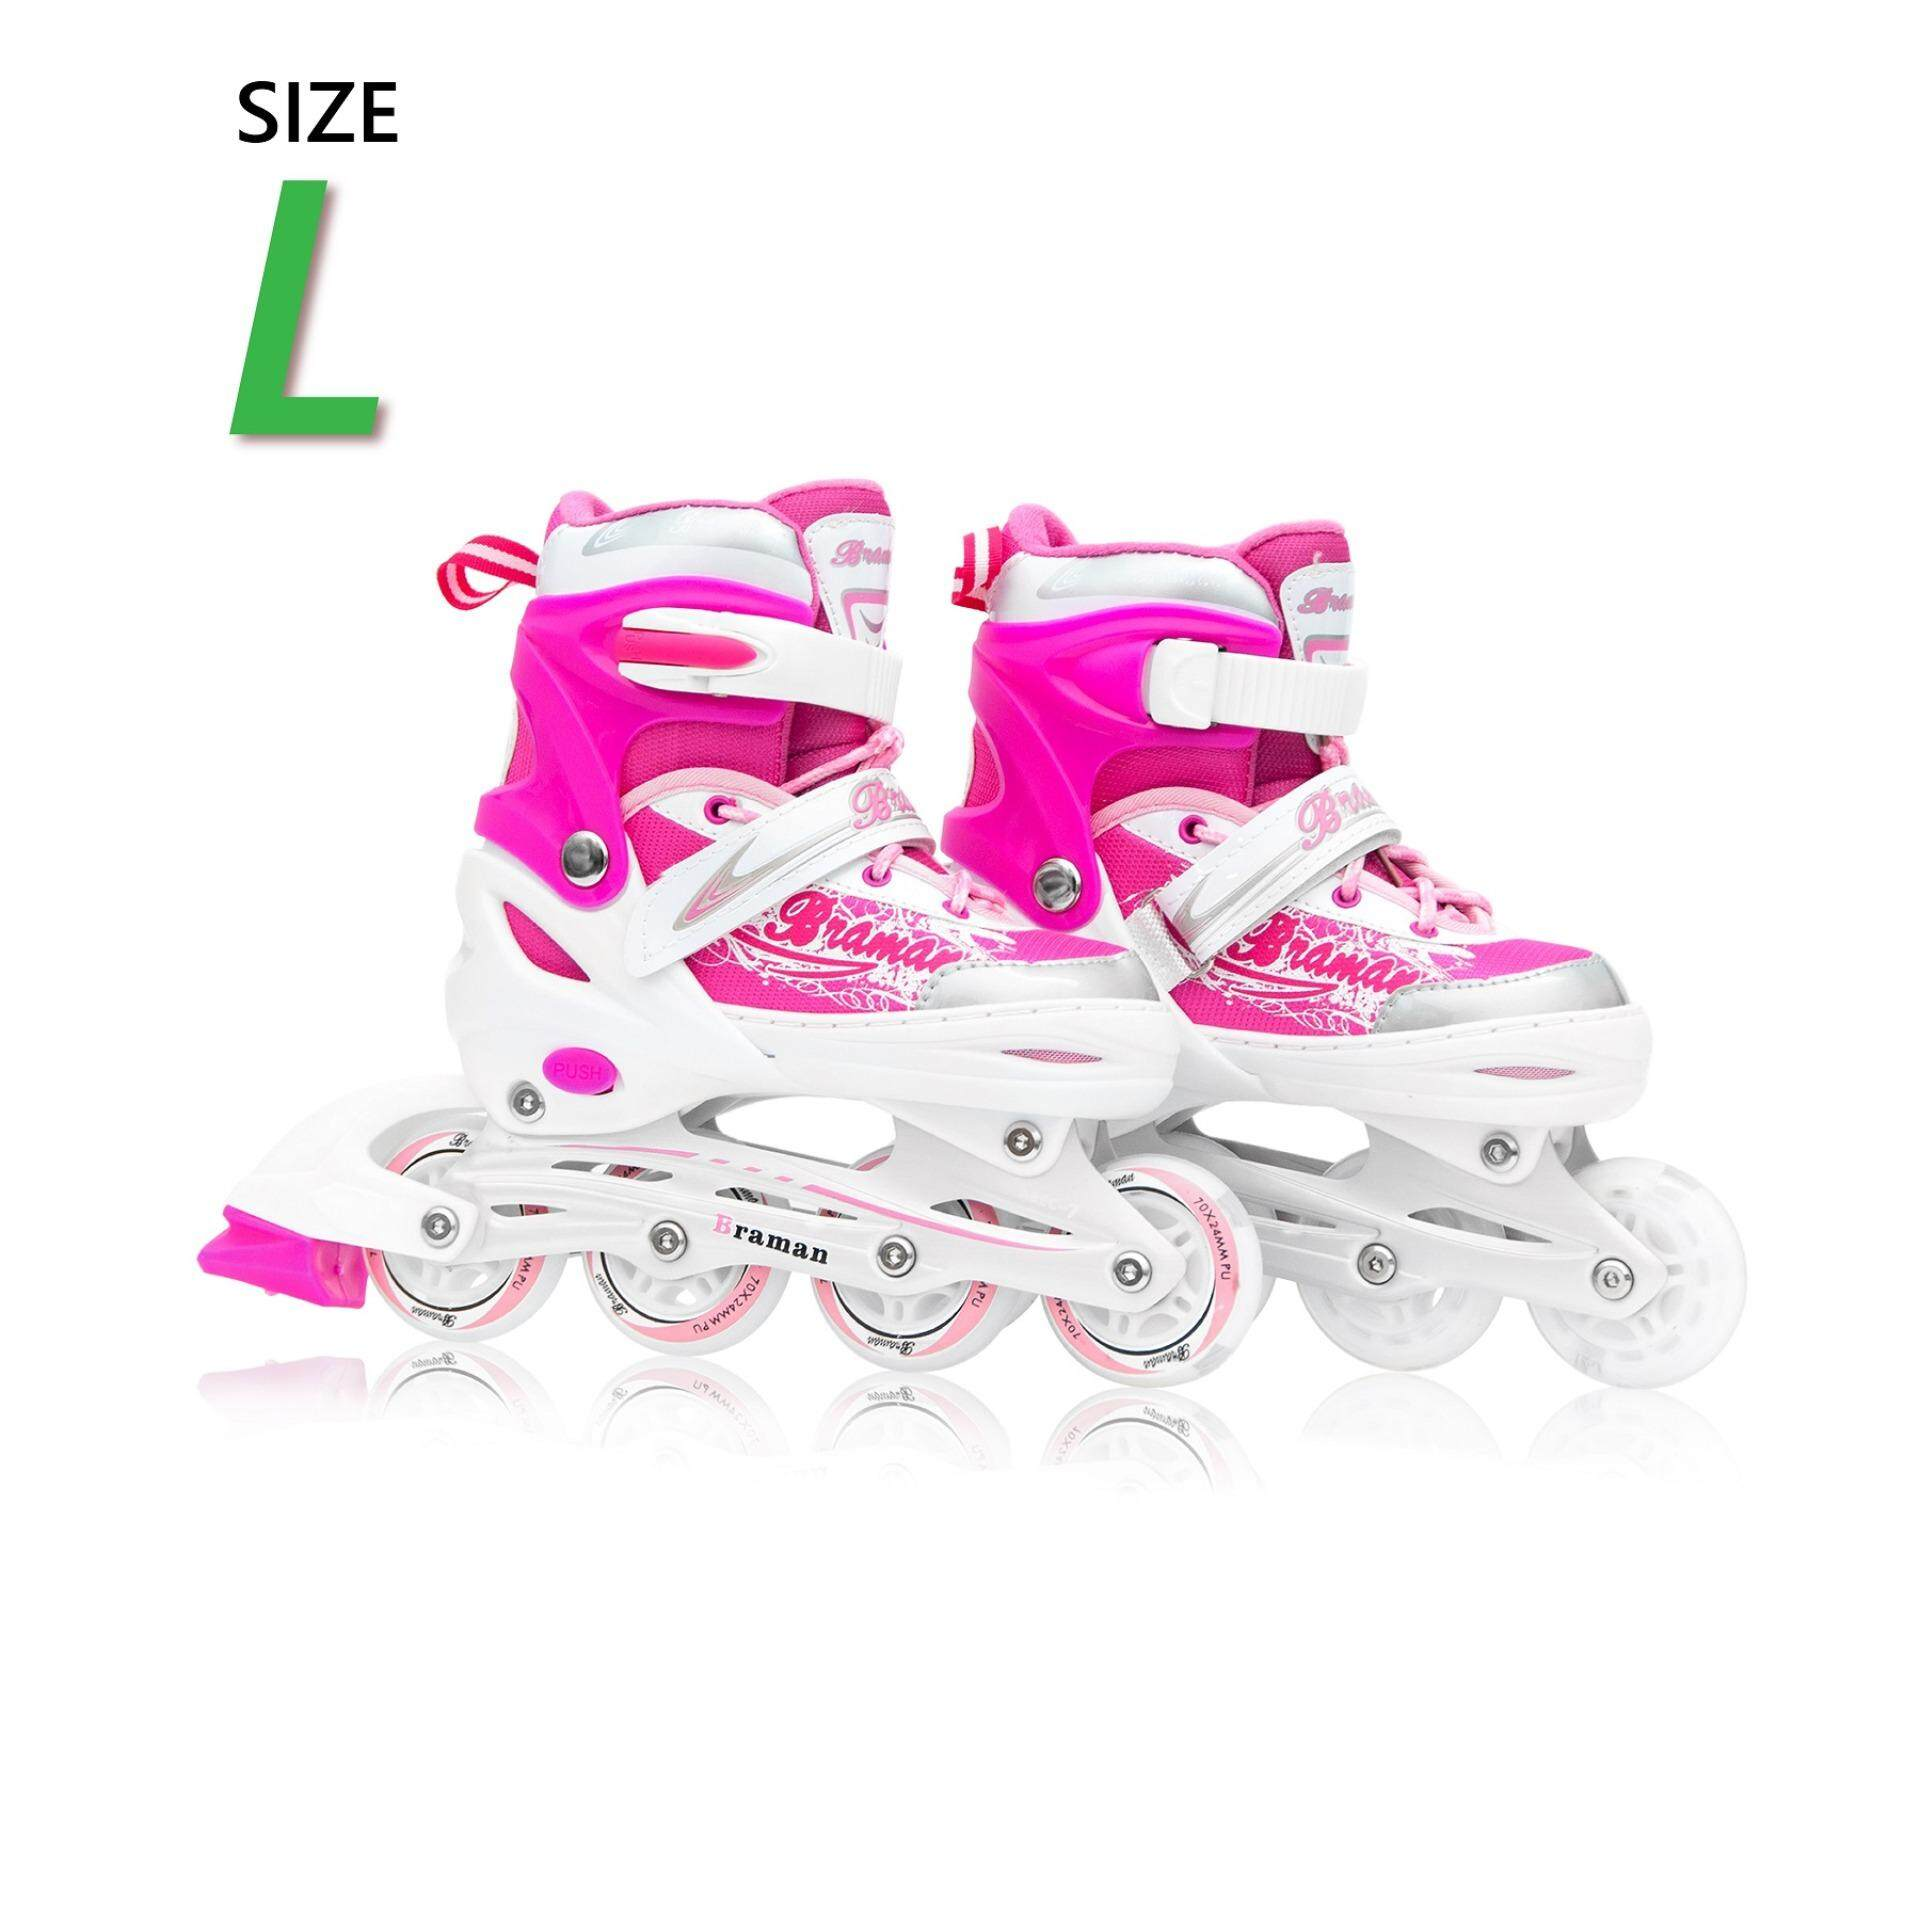 ราคา รองเท้าอินไลน์สเก็ต Premium Inline Skate Braman Aluminium Tracks Abec 7 Wheels With Lights 0415C Warranty 1 Year เบอร์ 33 36 Pink L